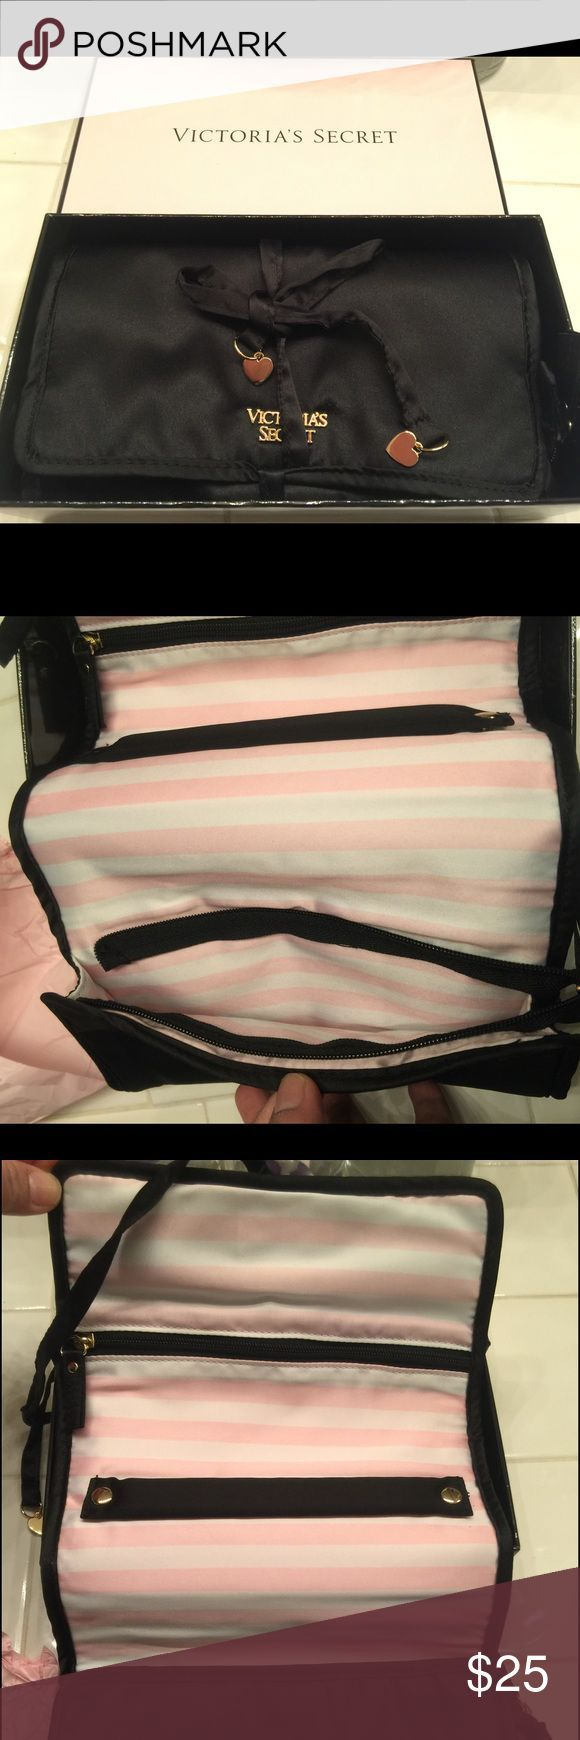 Victoria secret silk Lingerie classy bag VIP from VS only gets this Lingerie bag. Never been used . Victoria's Secret Intimates & Sleepwear - revealing lingerie, classy womens lingerie, lingerie plus *sponsored https://www.pinterest.com/lingerie_yes/ https://www.pinterest.com/explore/lingerie/ https://www.pinterest.com/lingerie_yes/fantasy-lingerie/ https://trashy.com/